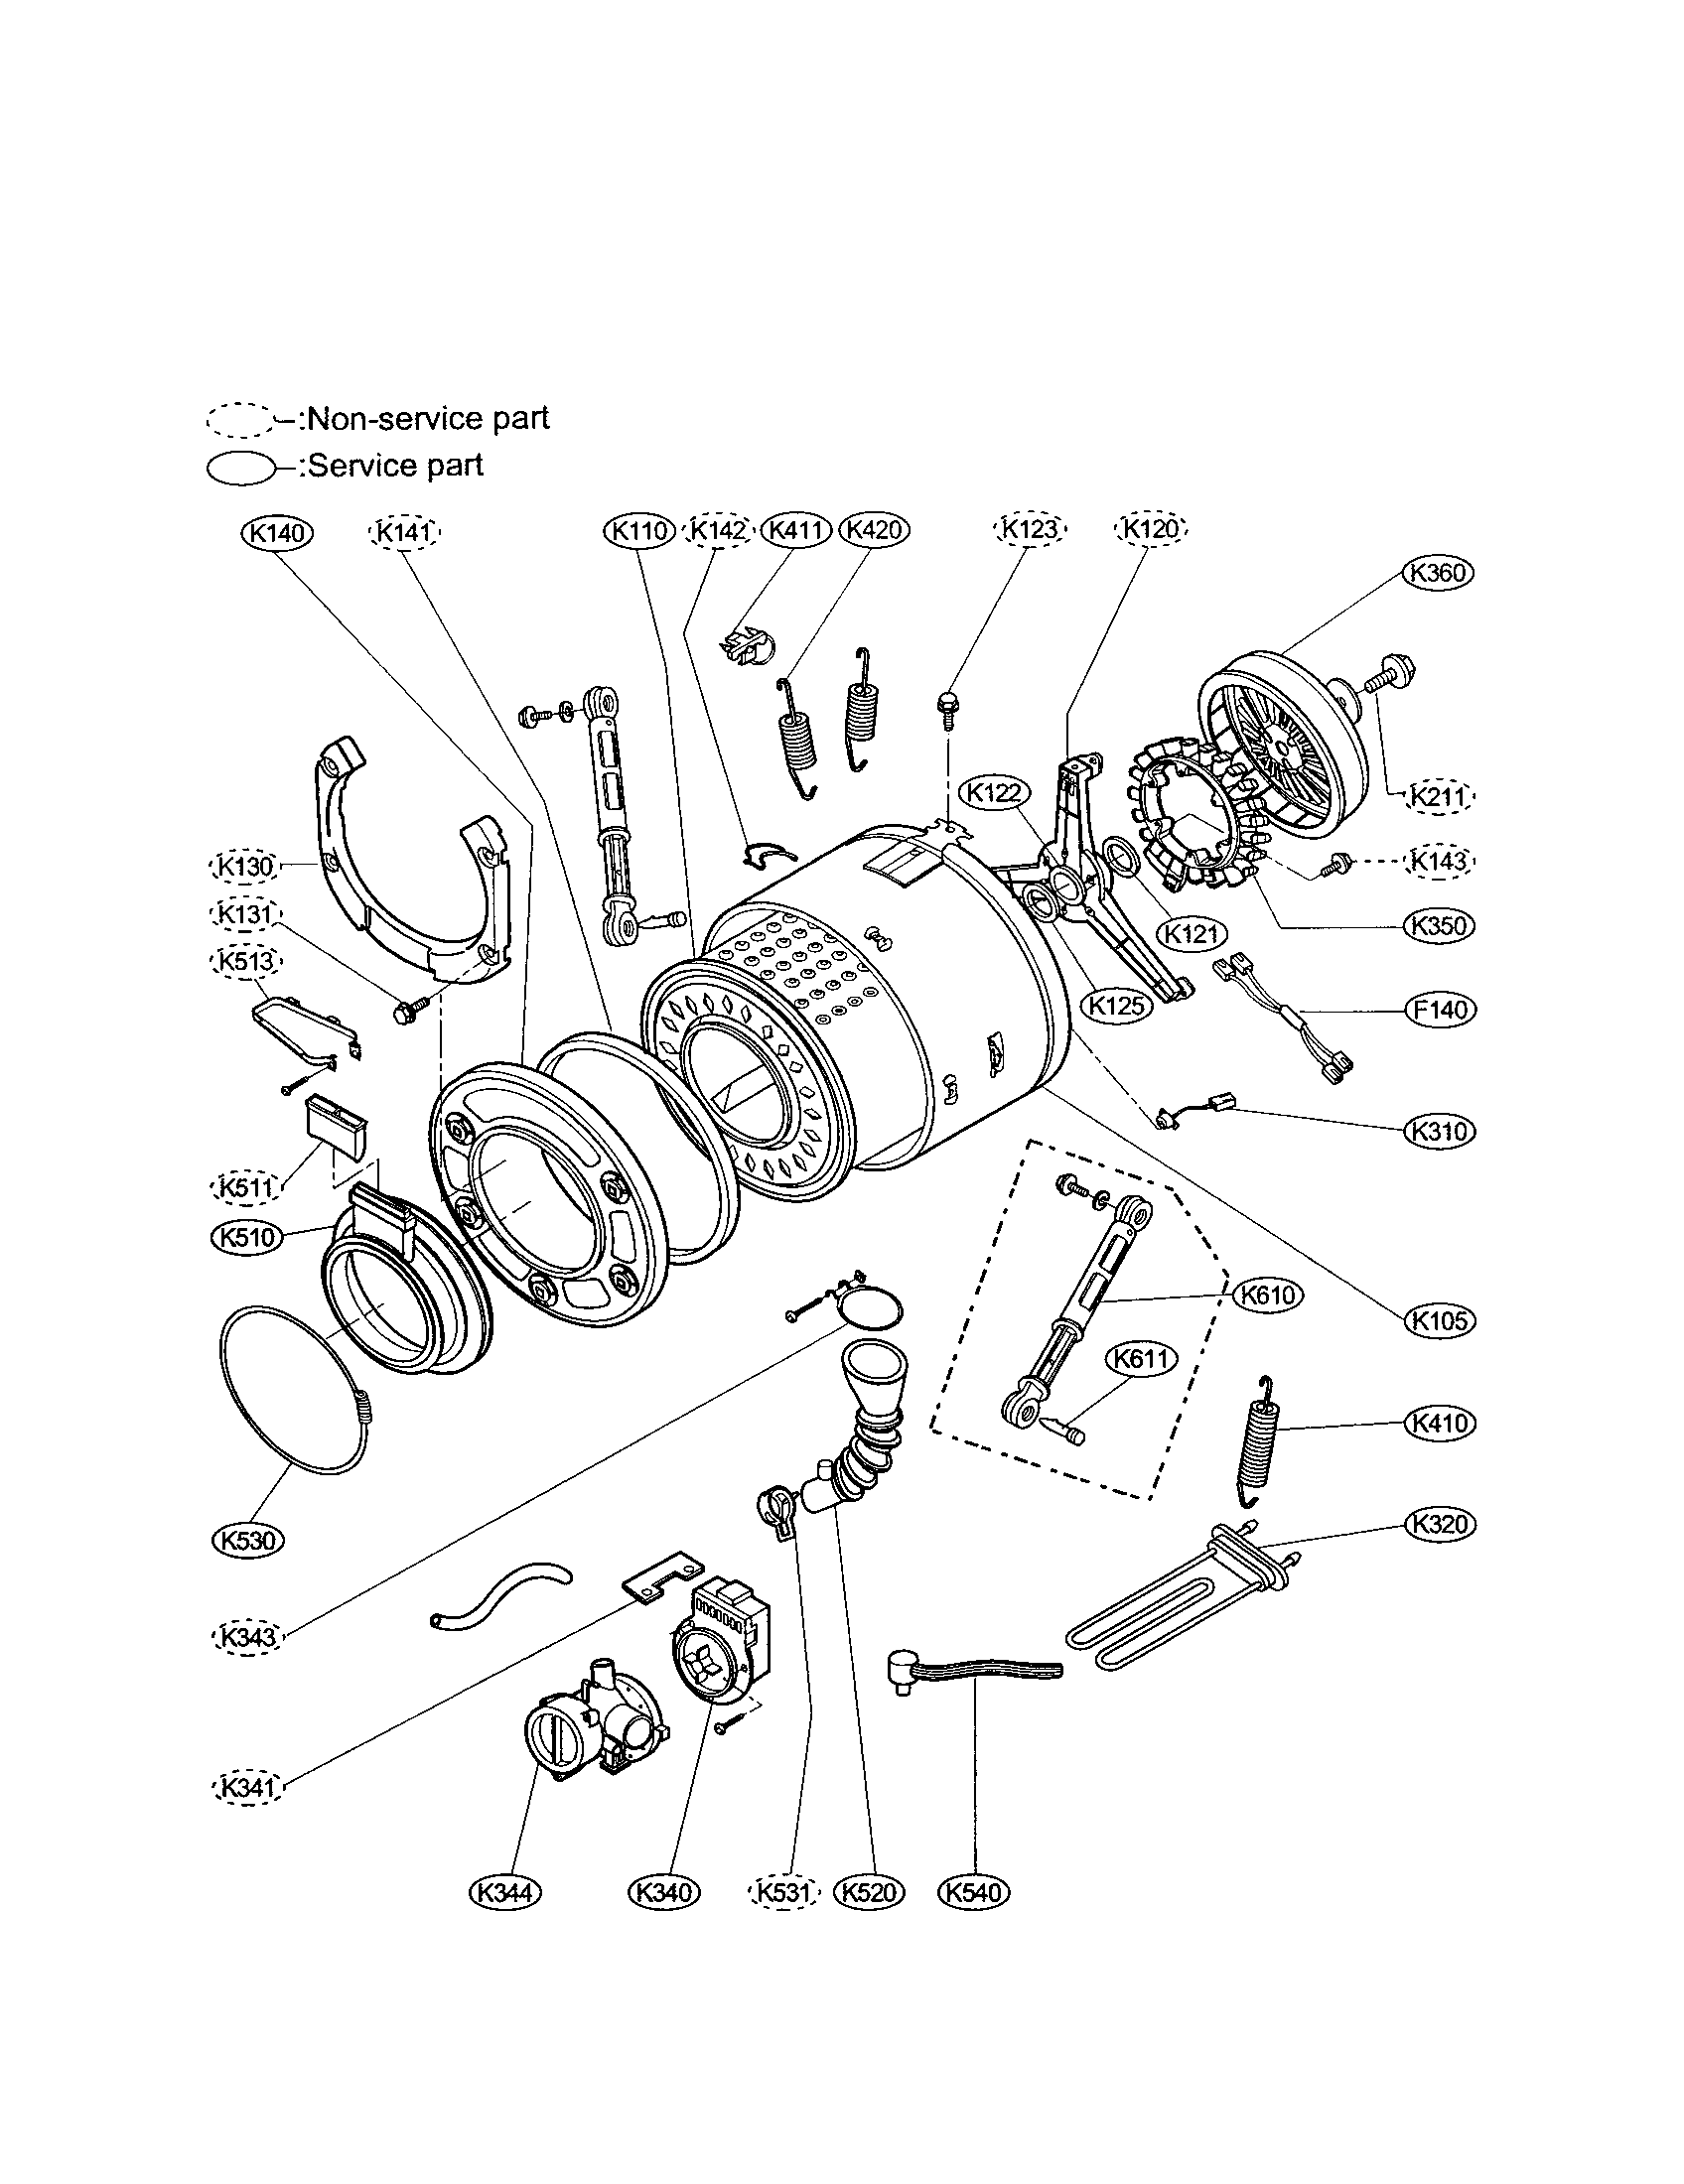 DRUM AND TUB ASSEMBLY Diagram & Parts List for Model